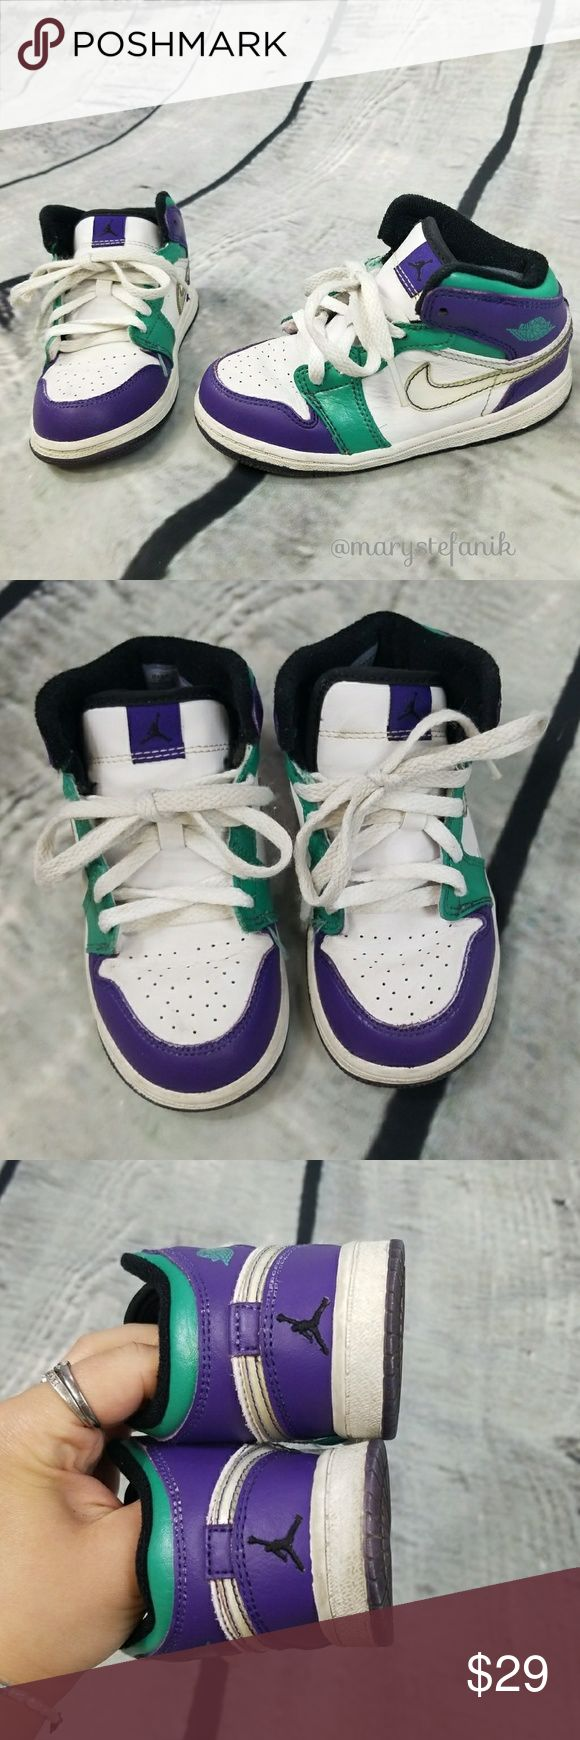 {Toddler Girl's} Nike Air Jordan I Retro TD 8.5C {Toddler Girl's} Nike Air Jordan I Retro TD 322680-301 size 8.5C in good used condition. Some creases and marks from use. Rare sneakers from 2008!  Please let me know if you have any questions. Happy Poshing! Nike Shoes Sneakers